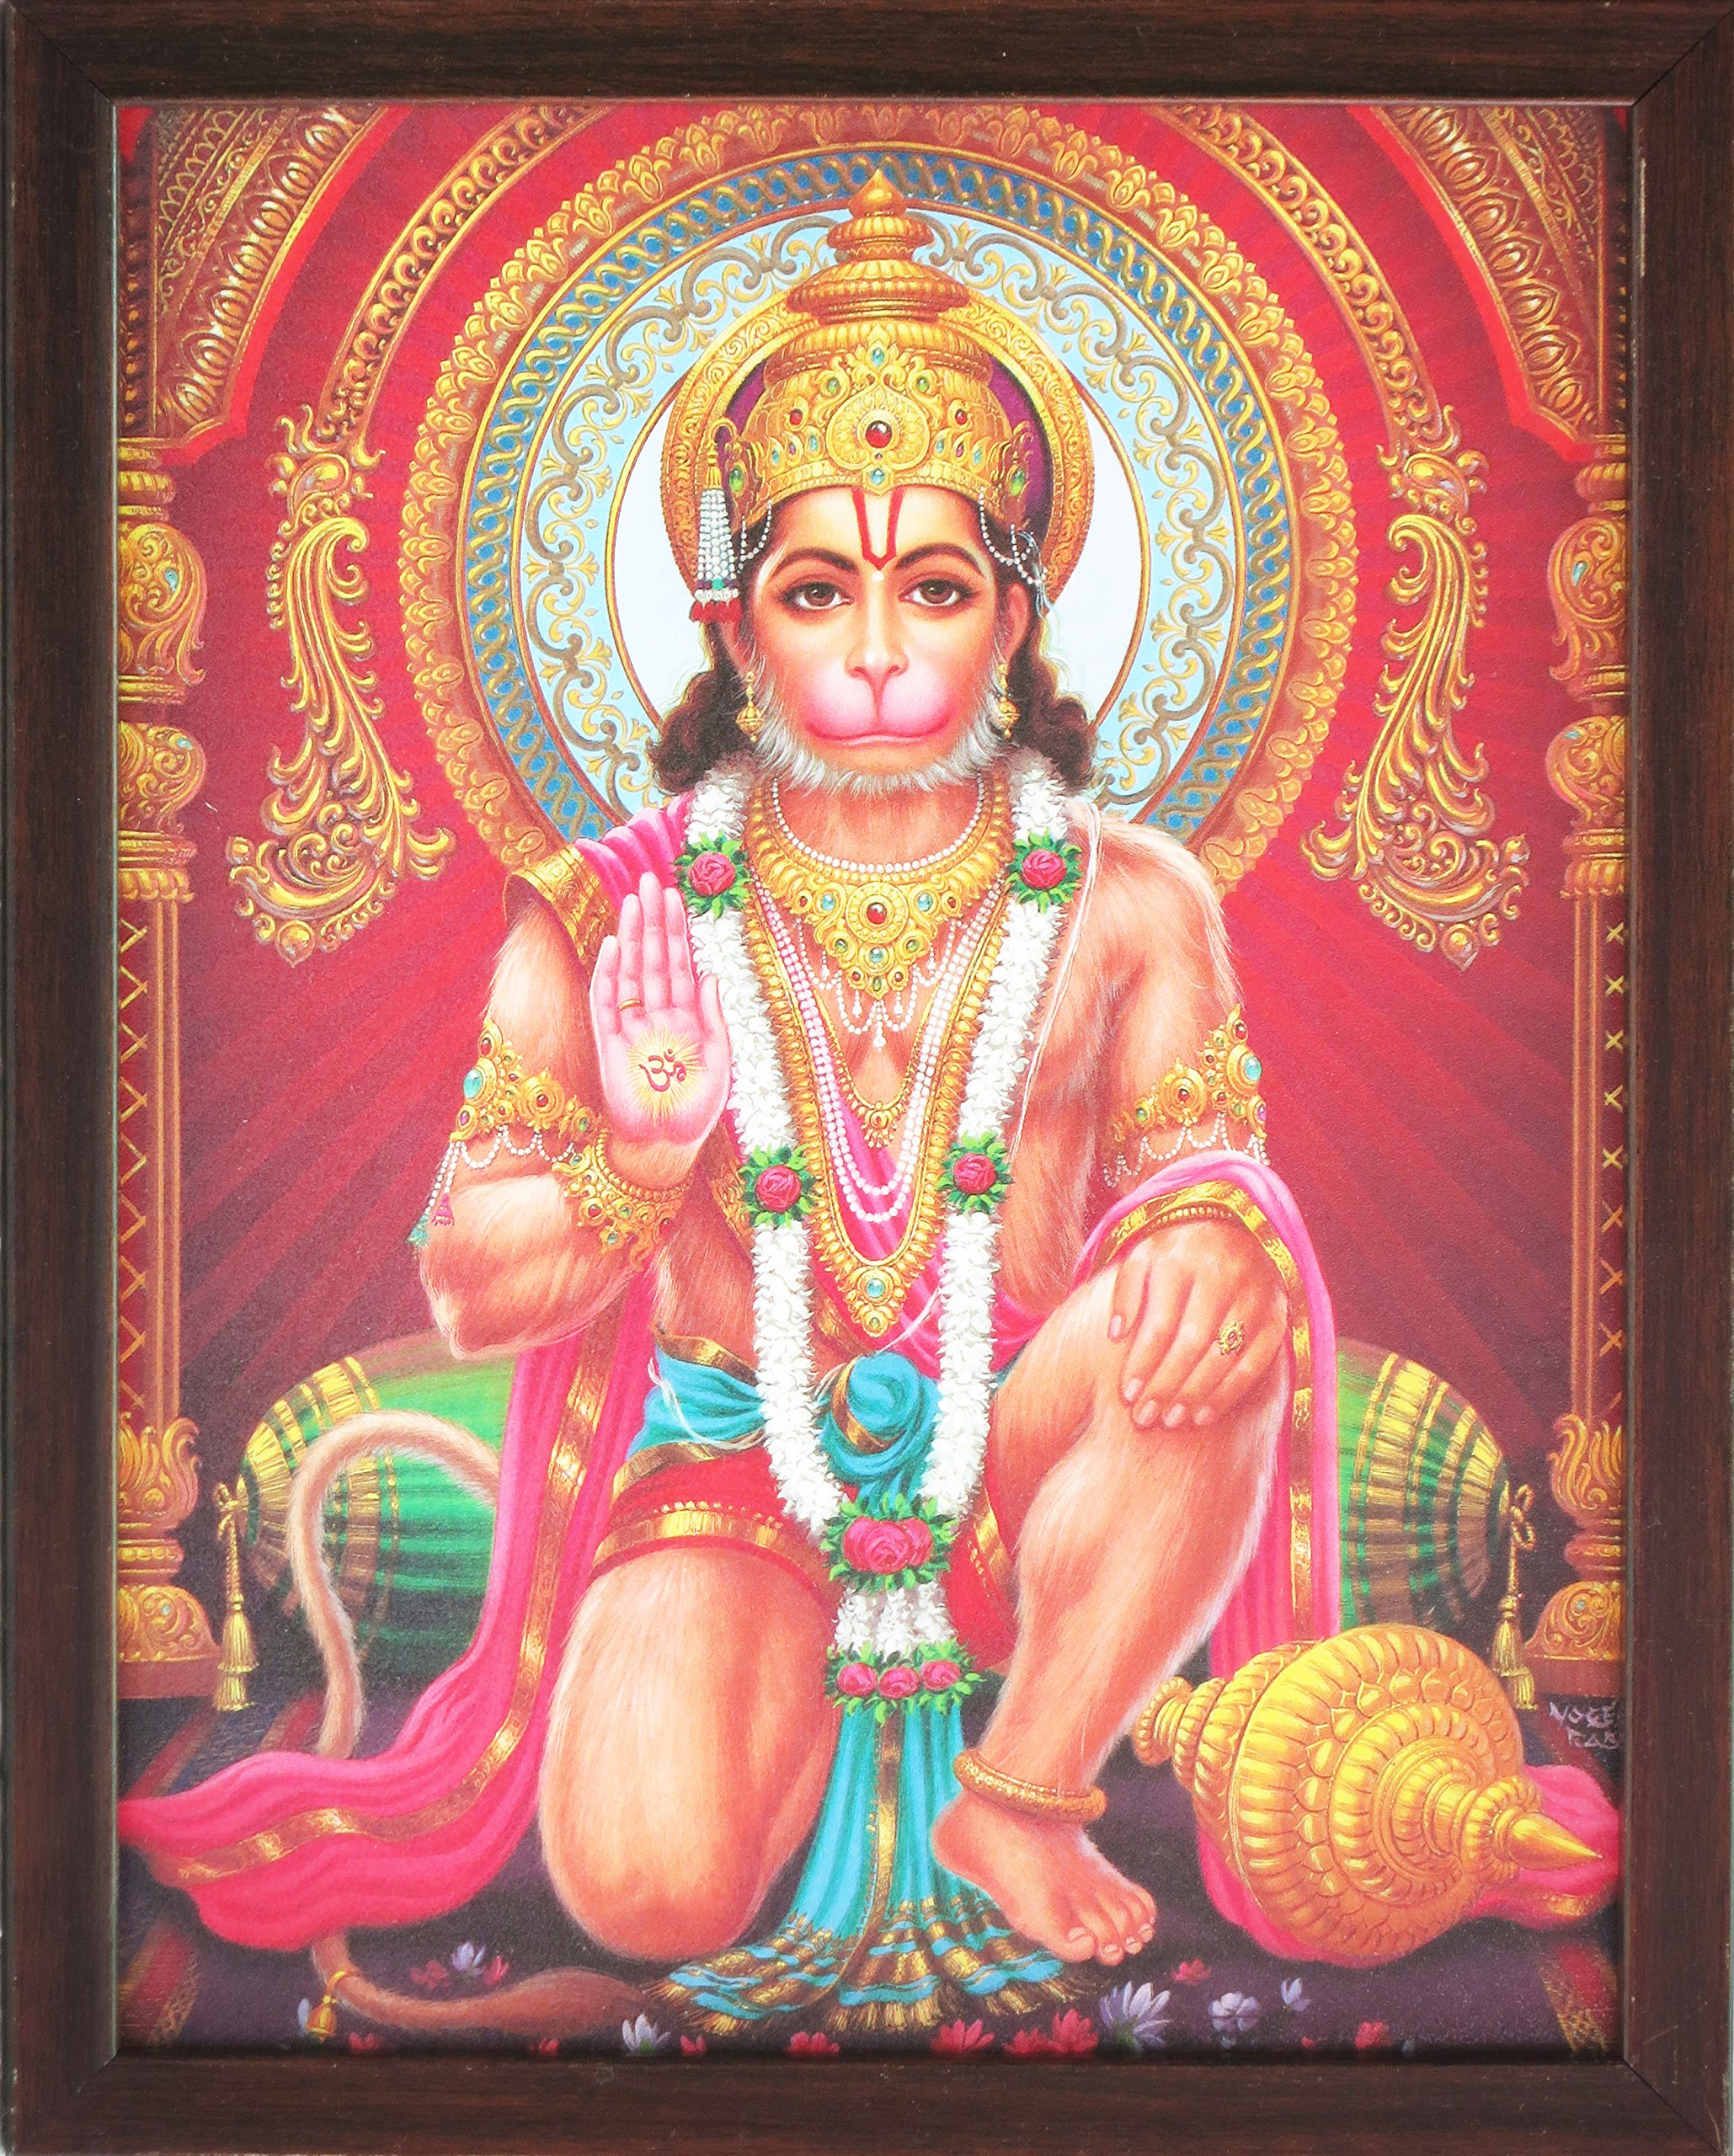 Handicraft Store Hanuman Giving Blessings, a Holy Hindu Religious Poster Painting with Frame for Worship Purpose